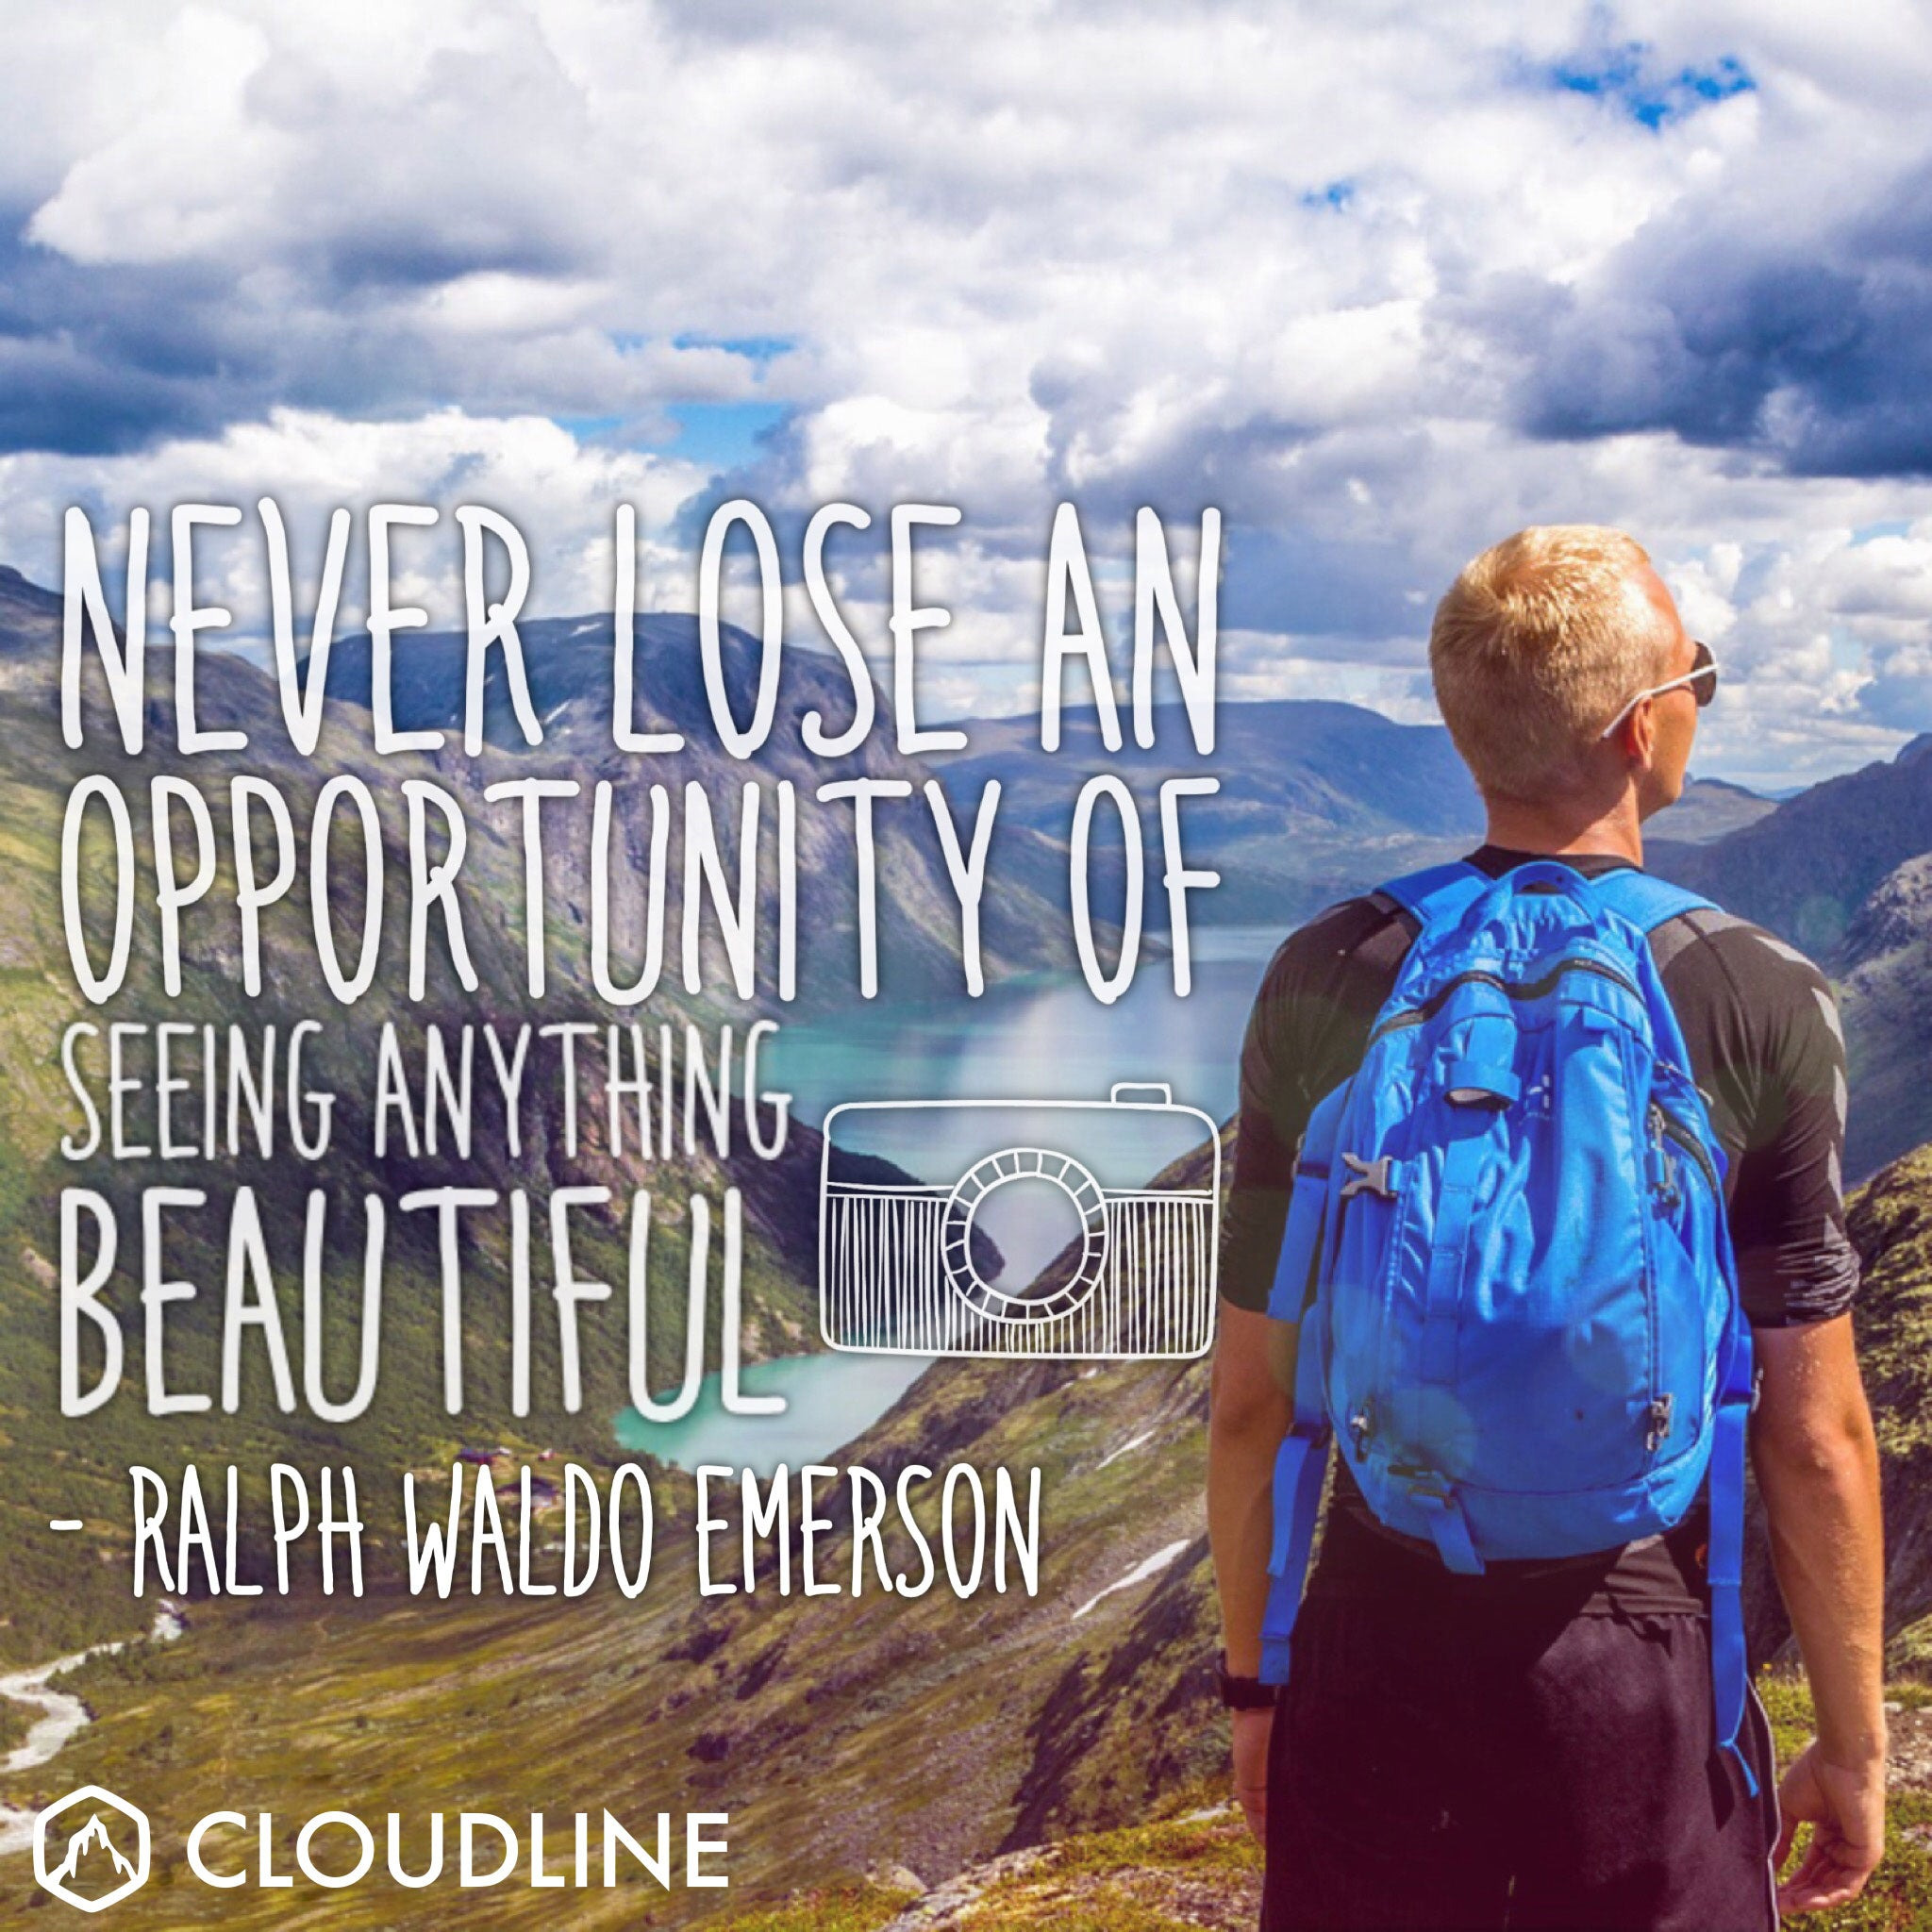 """Never lose an opportunity of seeing anything beautiful."" - Ralph Waldo Emerson"